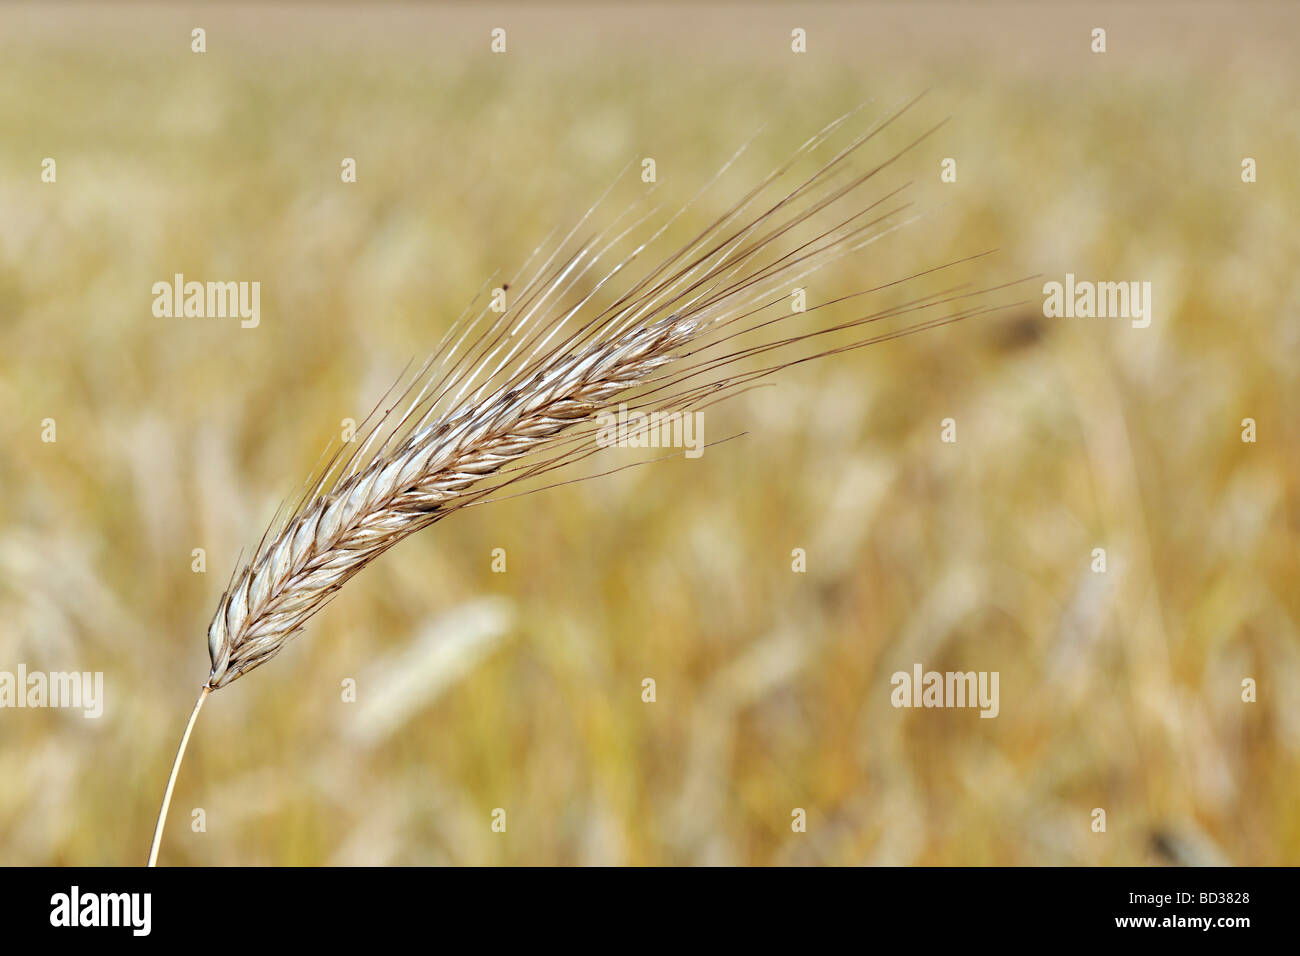 Ear of wheat ready to be harvested Stock Photo